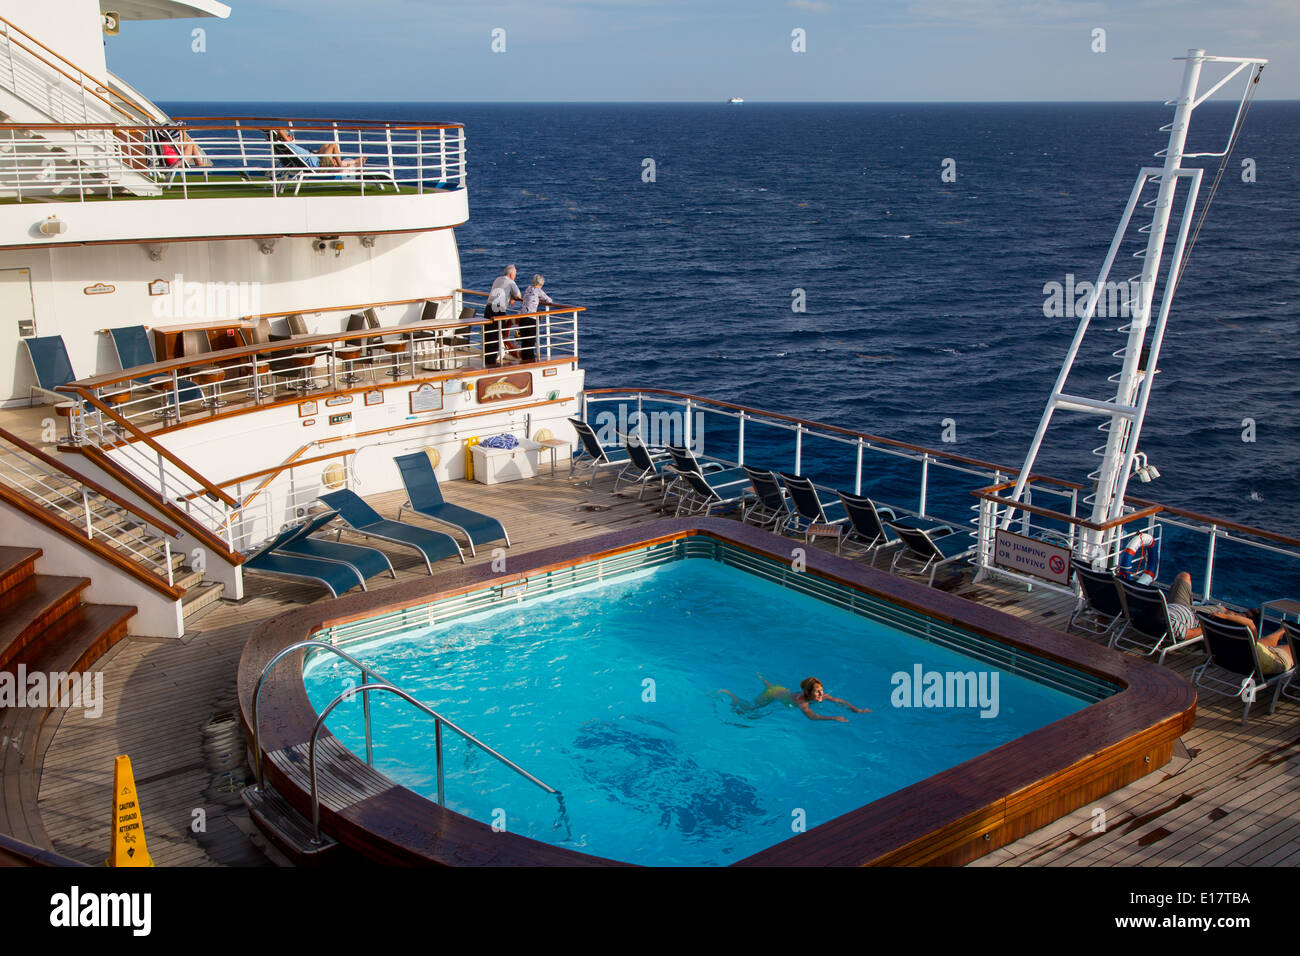 Woman swimming in aft pool of the emerald of the seas cruise ship stock photo royalty free for River cruise ships with swimming pool